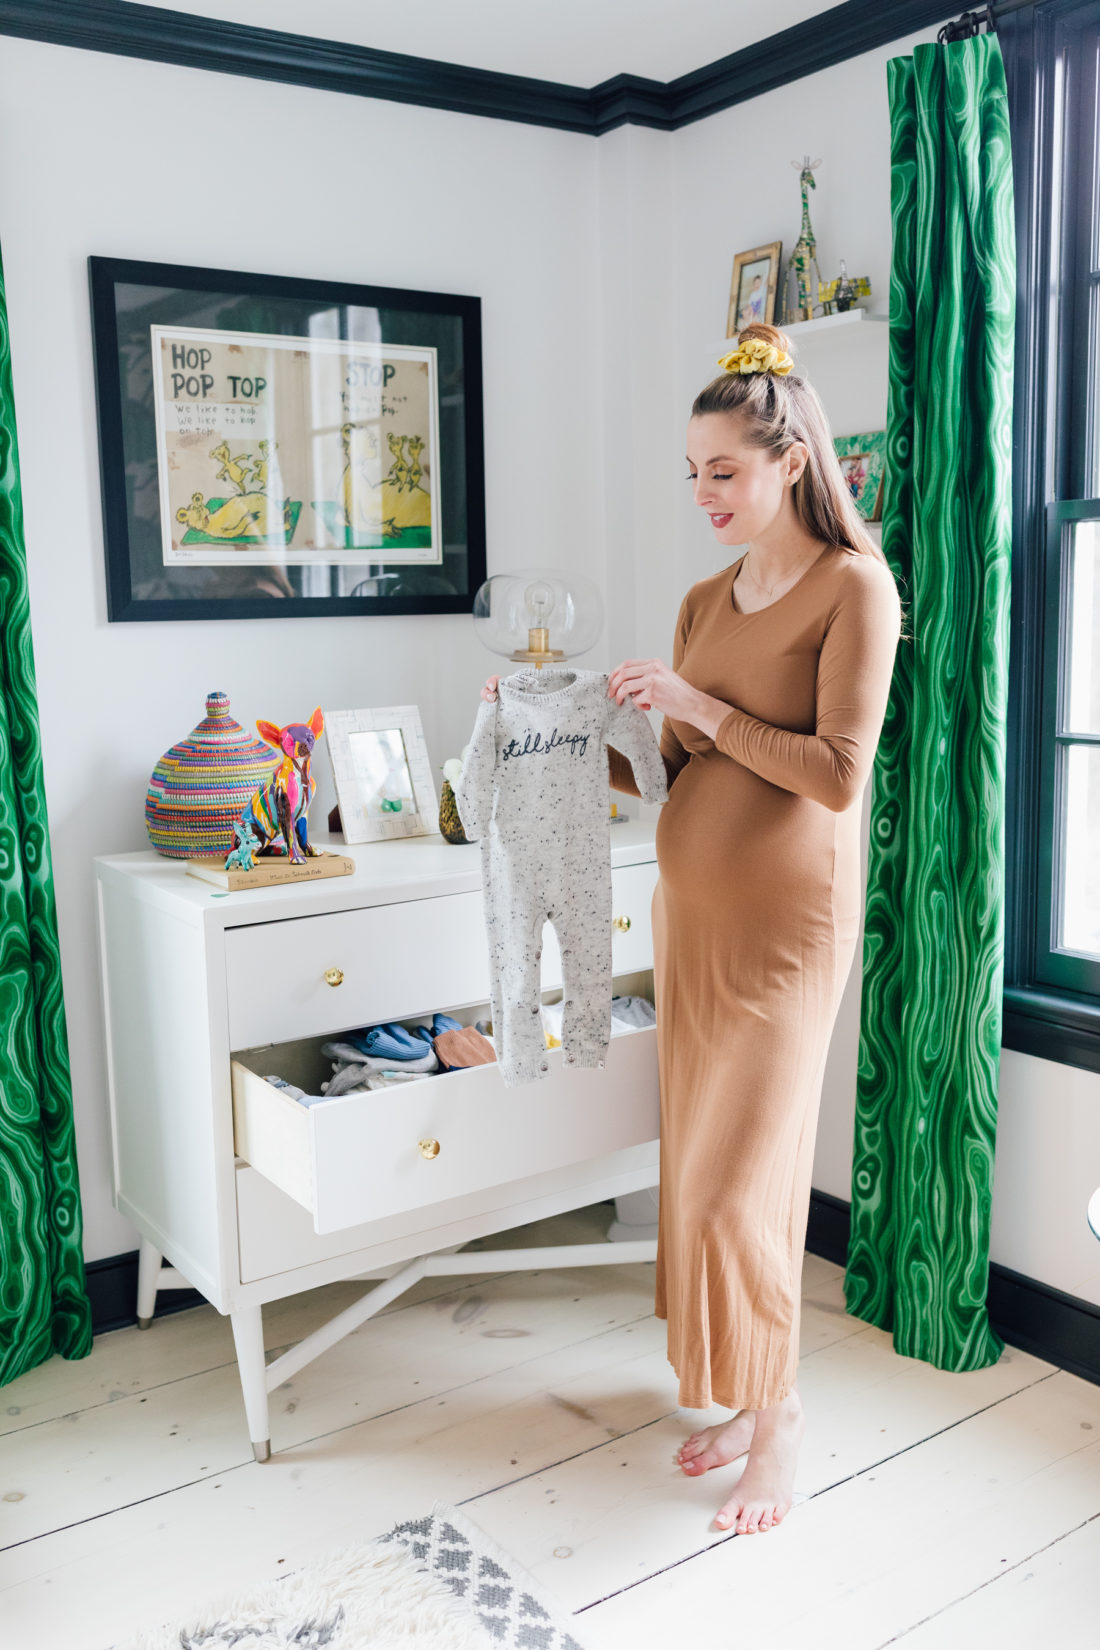 Blogger Eva Amurri discusses how she's preparing for baby #3